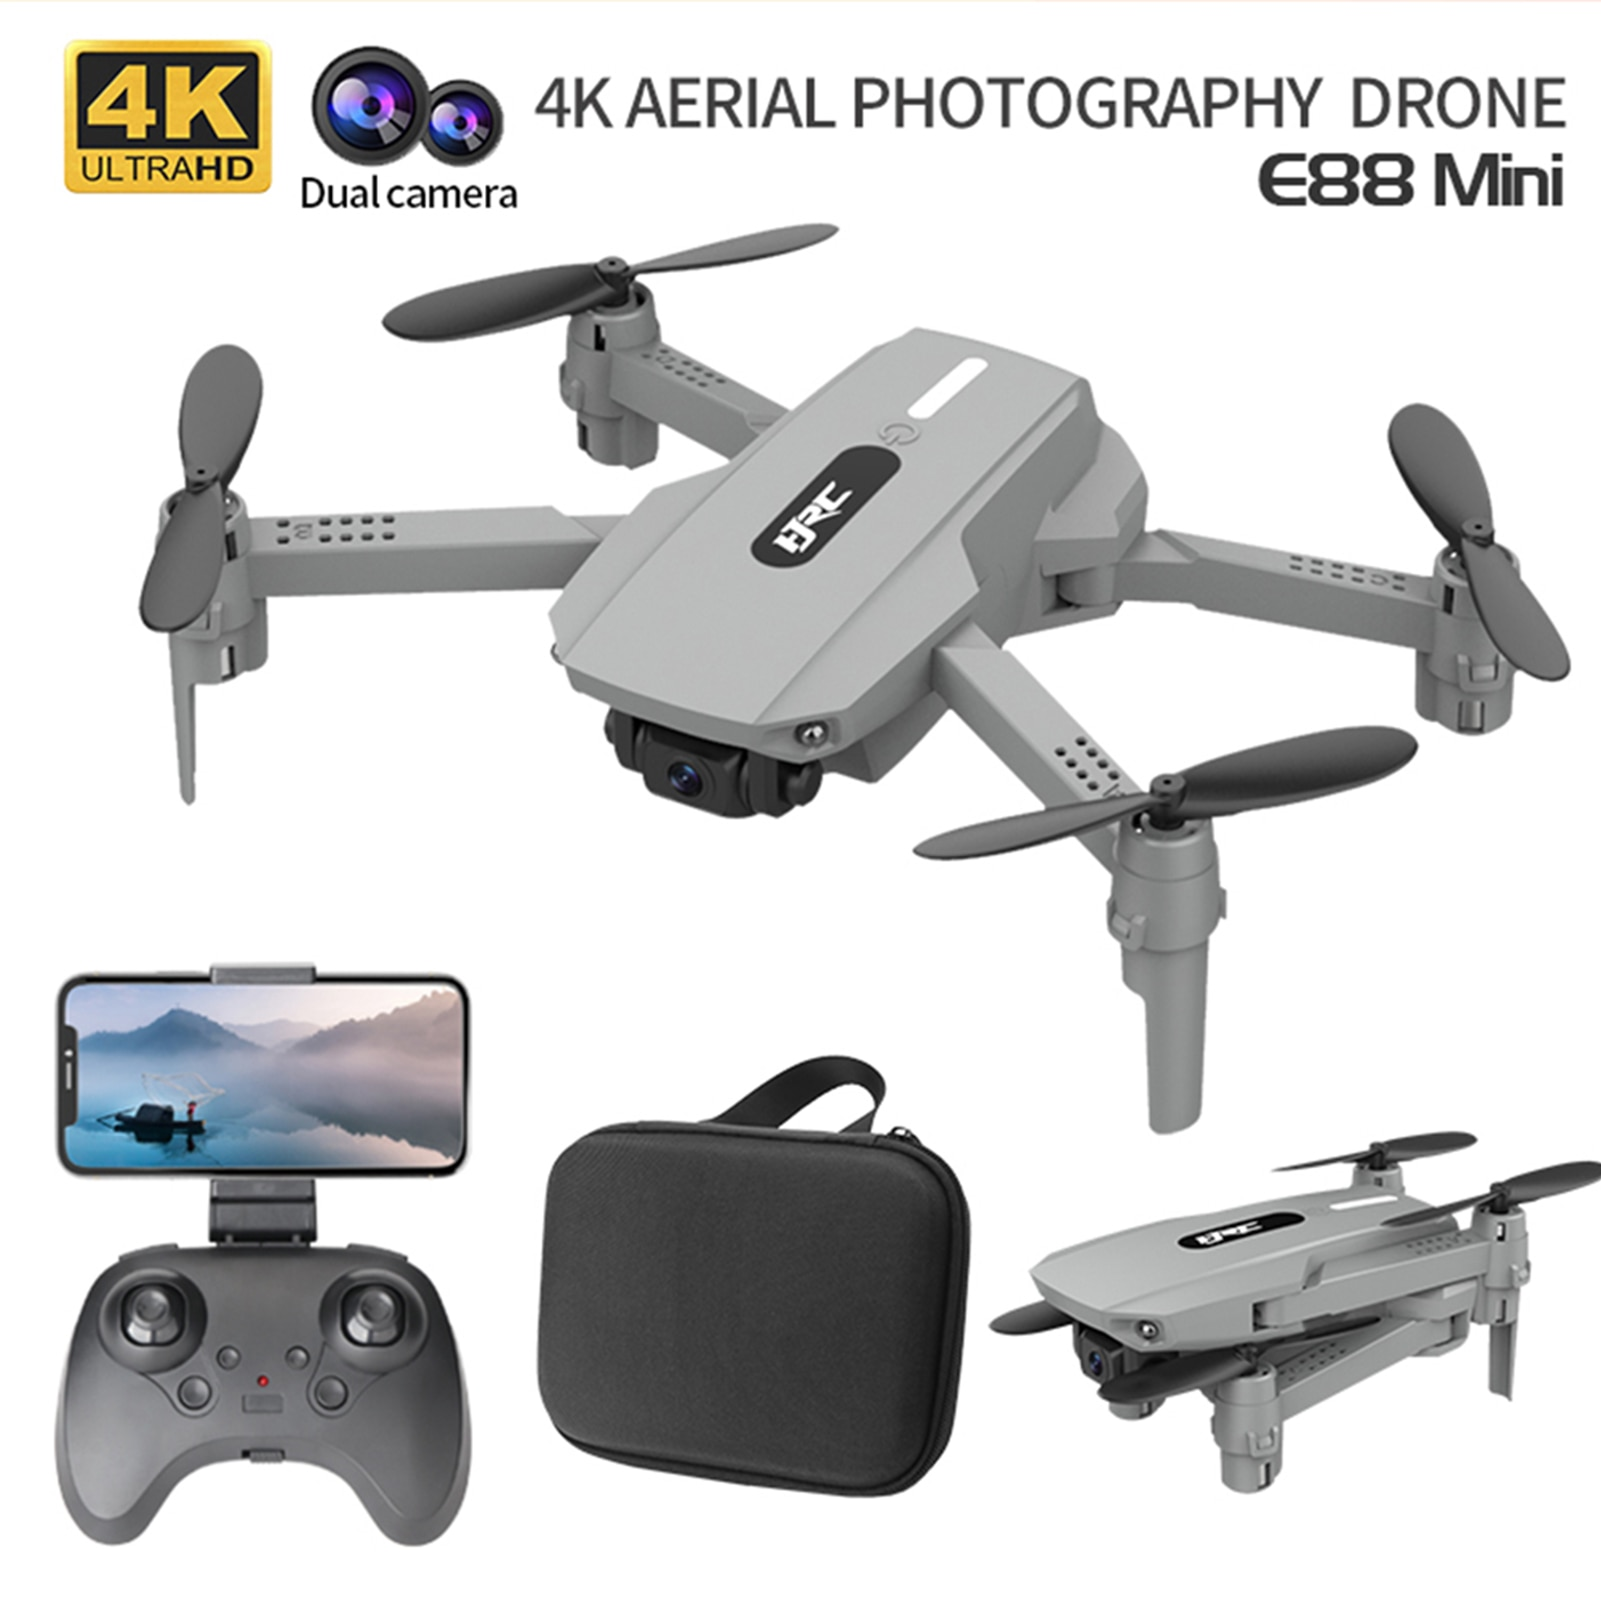 50x Zoom Foldable Mini Drone Altitude Hold 4K Dual Camera Quadcopter With Remote Controller RC FPV Helicopter Quad Toys For Kids